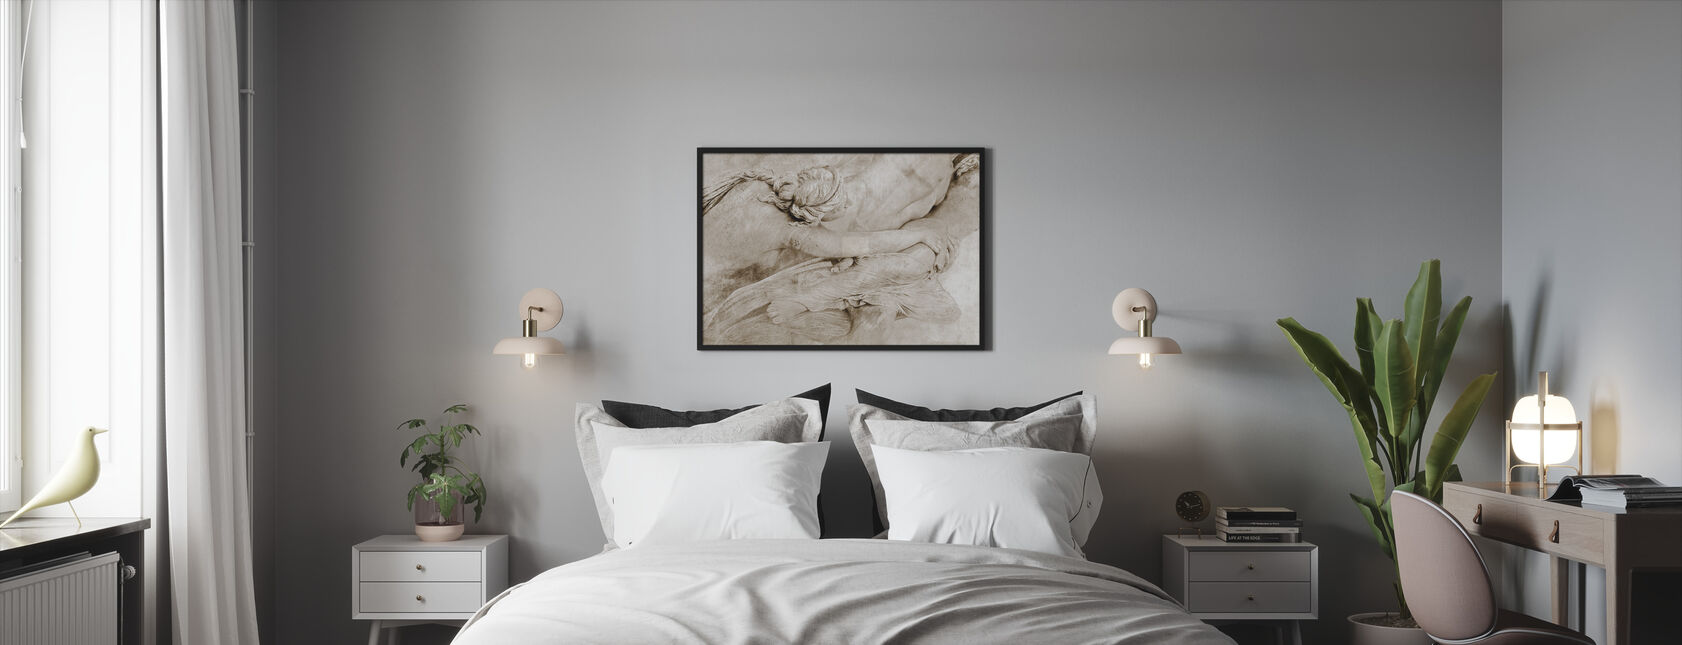 Of the Sculpture - Sepia - Framed print - Bedroom